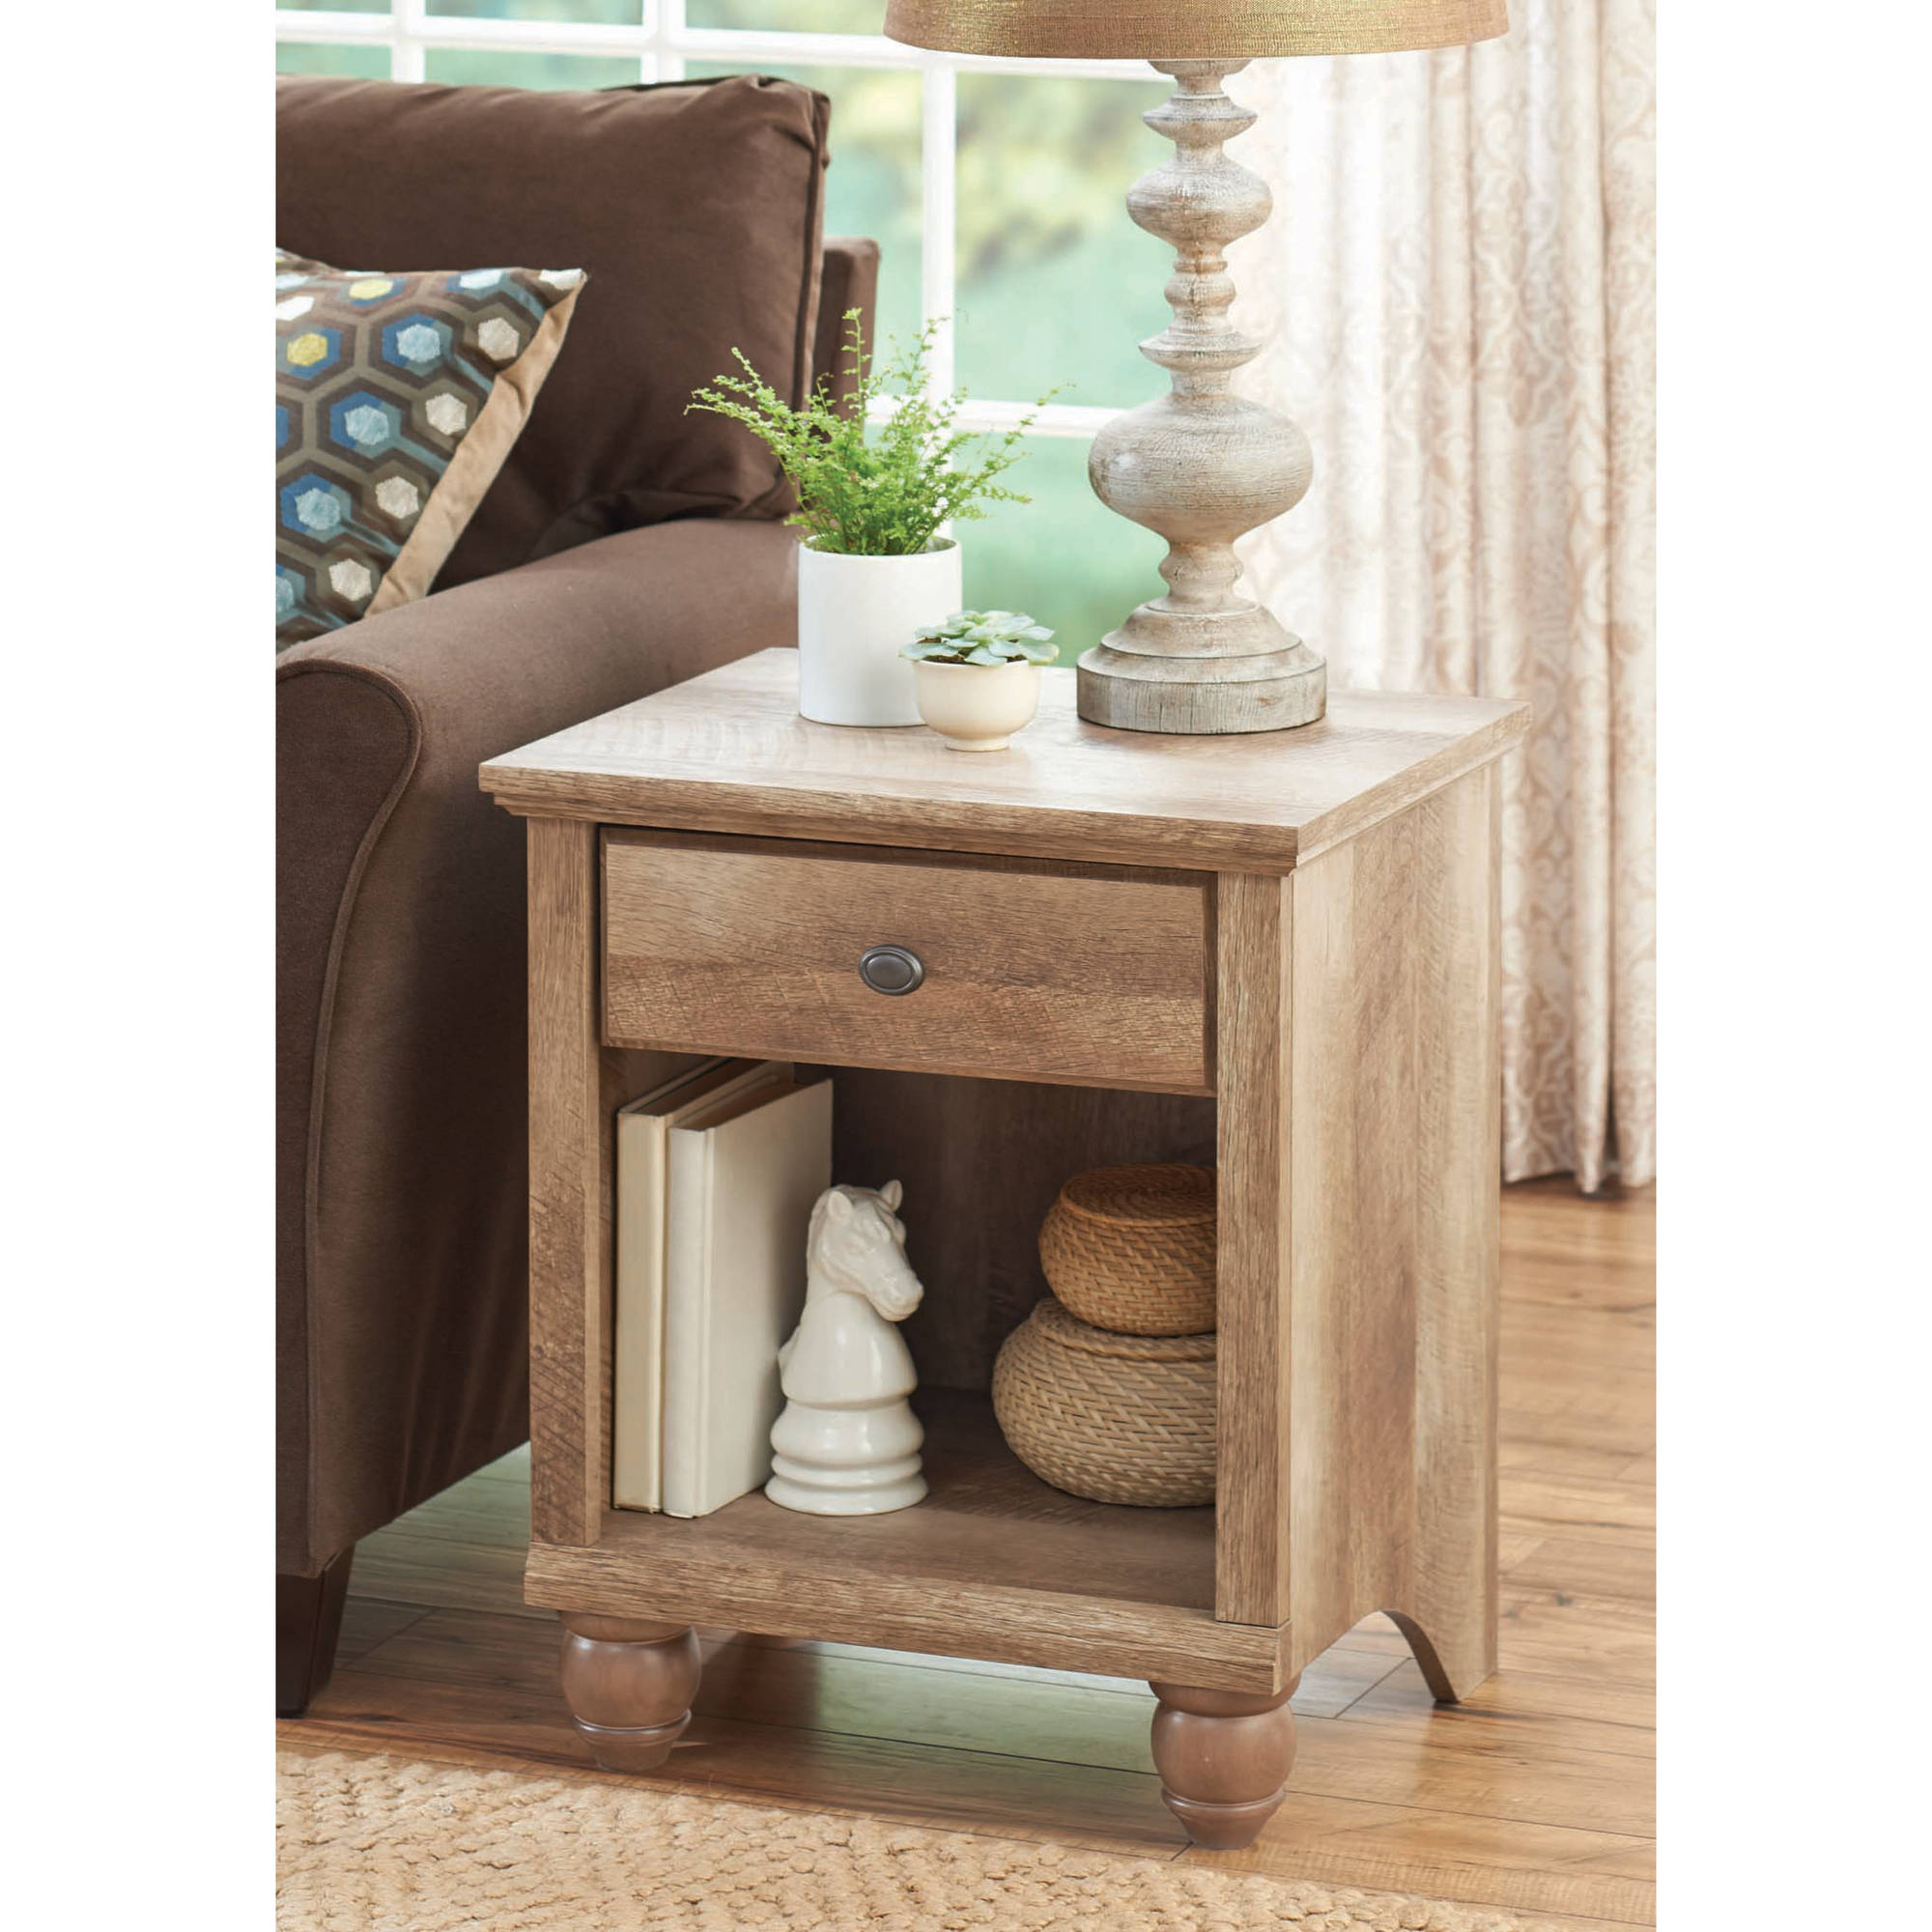 better homes gardens crossmill accent table weathered finish small half circle west elm wood chair pair side tables console with wine rack mini abacus lamp low square coffee ikea